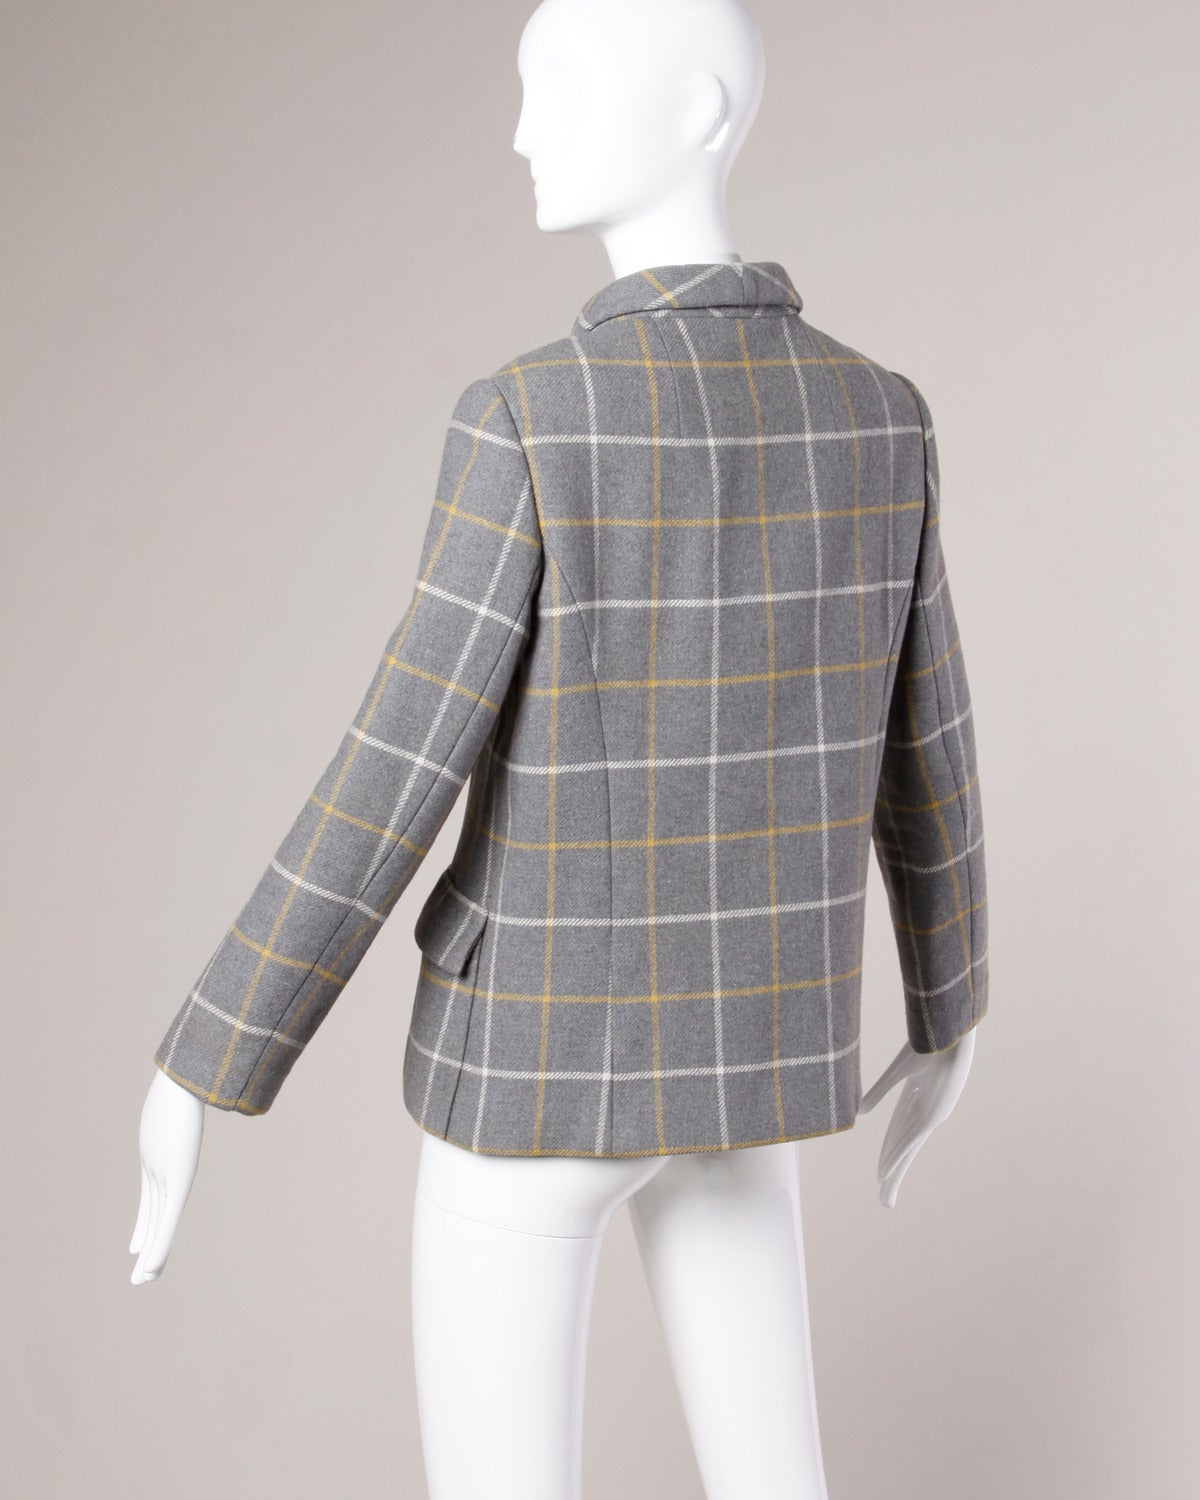 Gray Christian Dior Vintage 1960s Wool Plaid Tailored Jacket For Sale